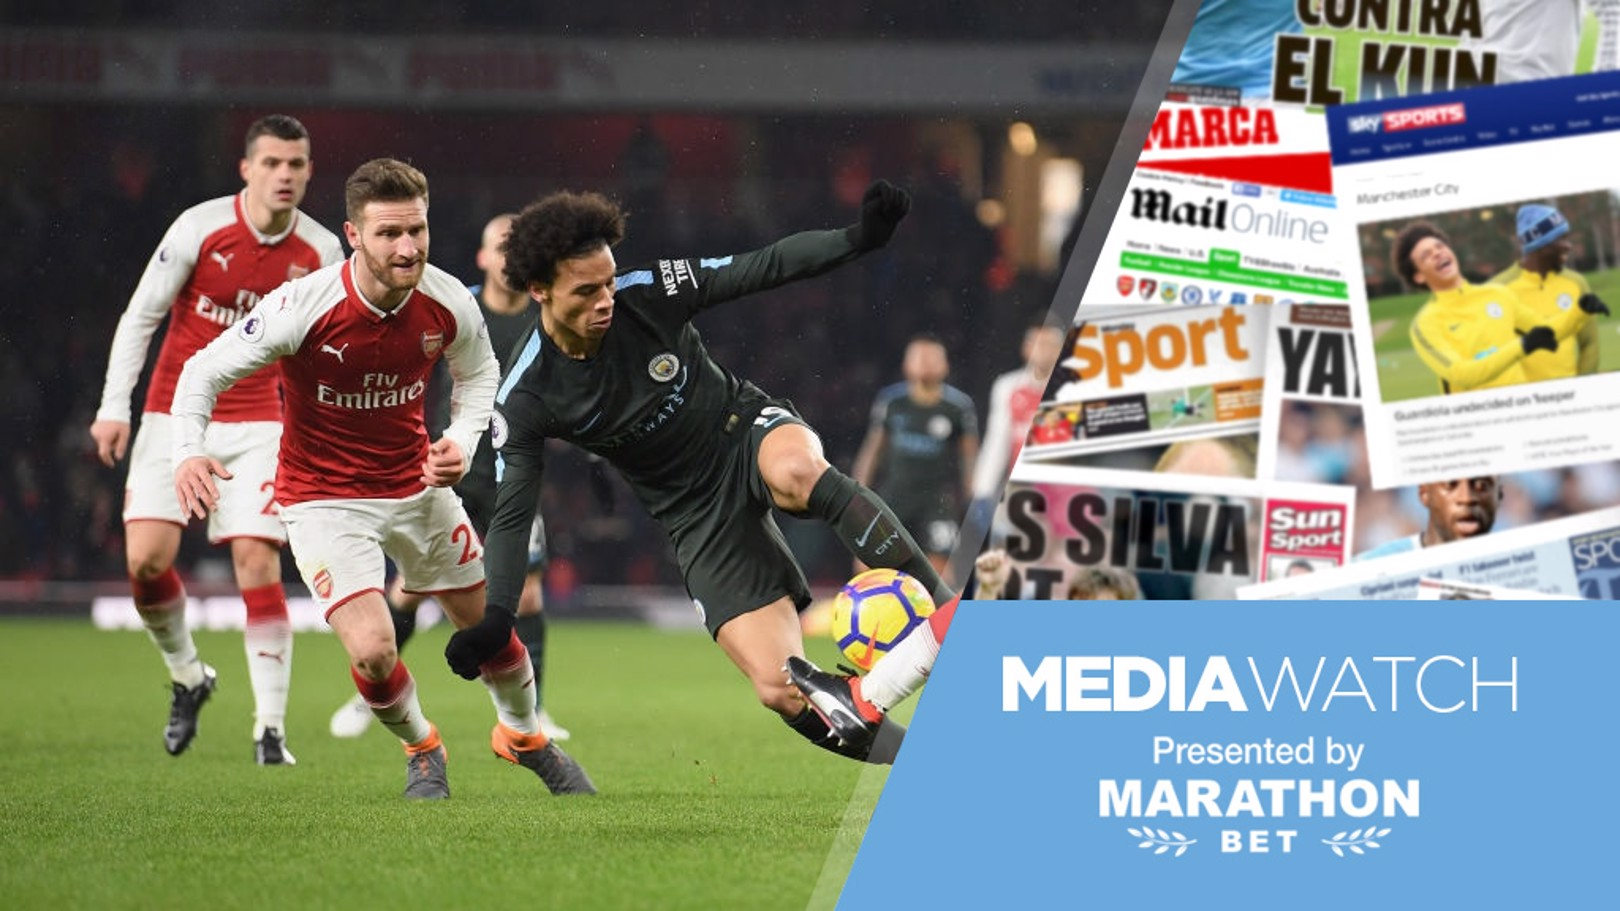 PREMIER FOCUS: City start the 18/19 campaign at Arsenal